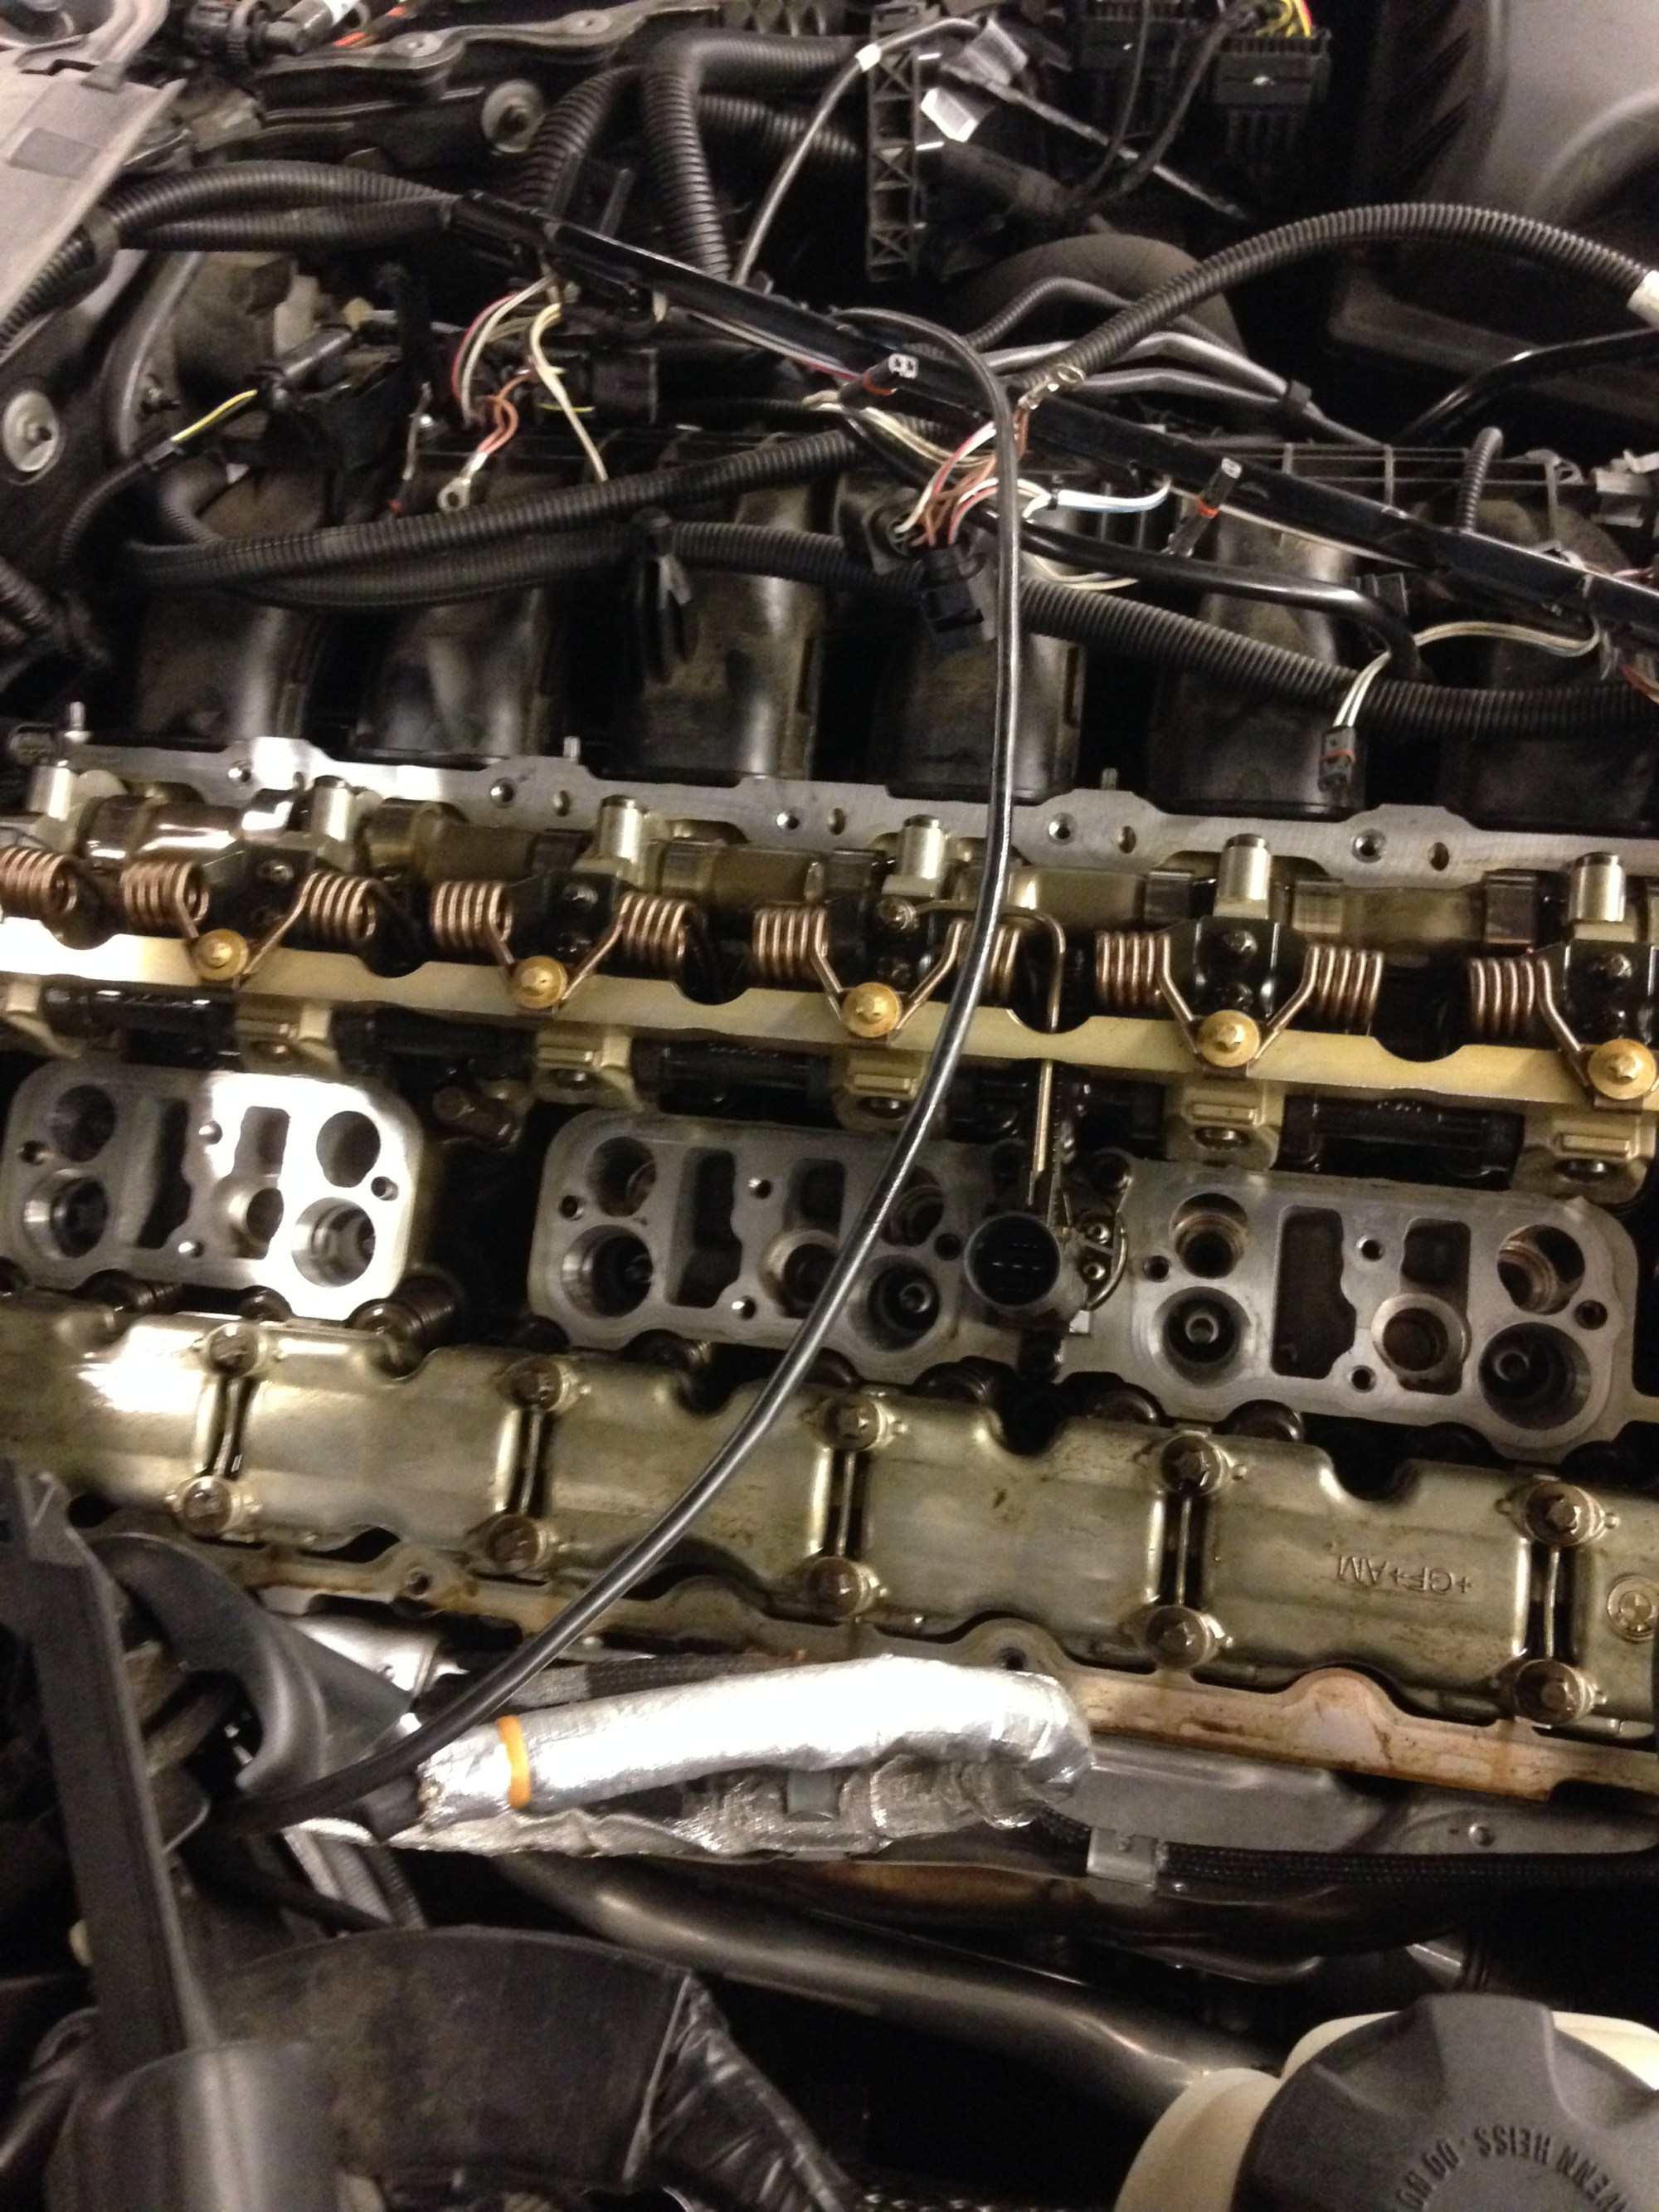 hight resolution of here you can see all the injector and spark plug stands removed